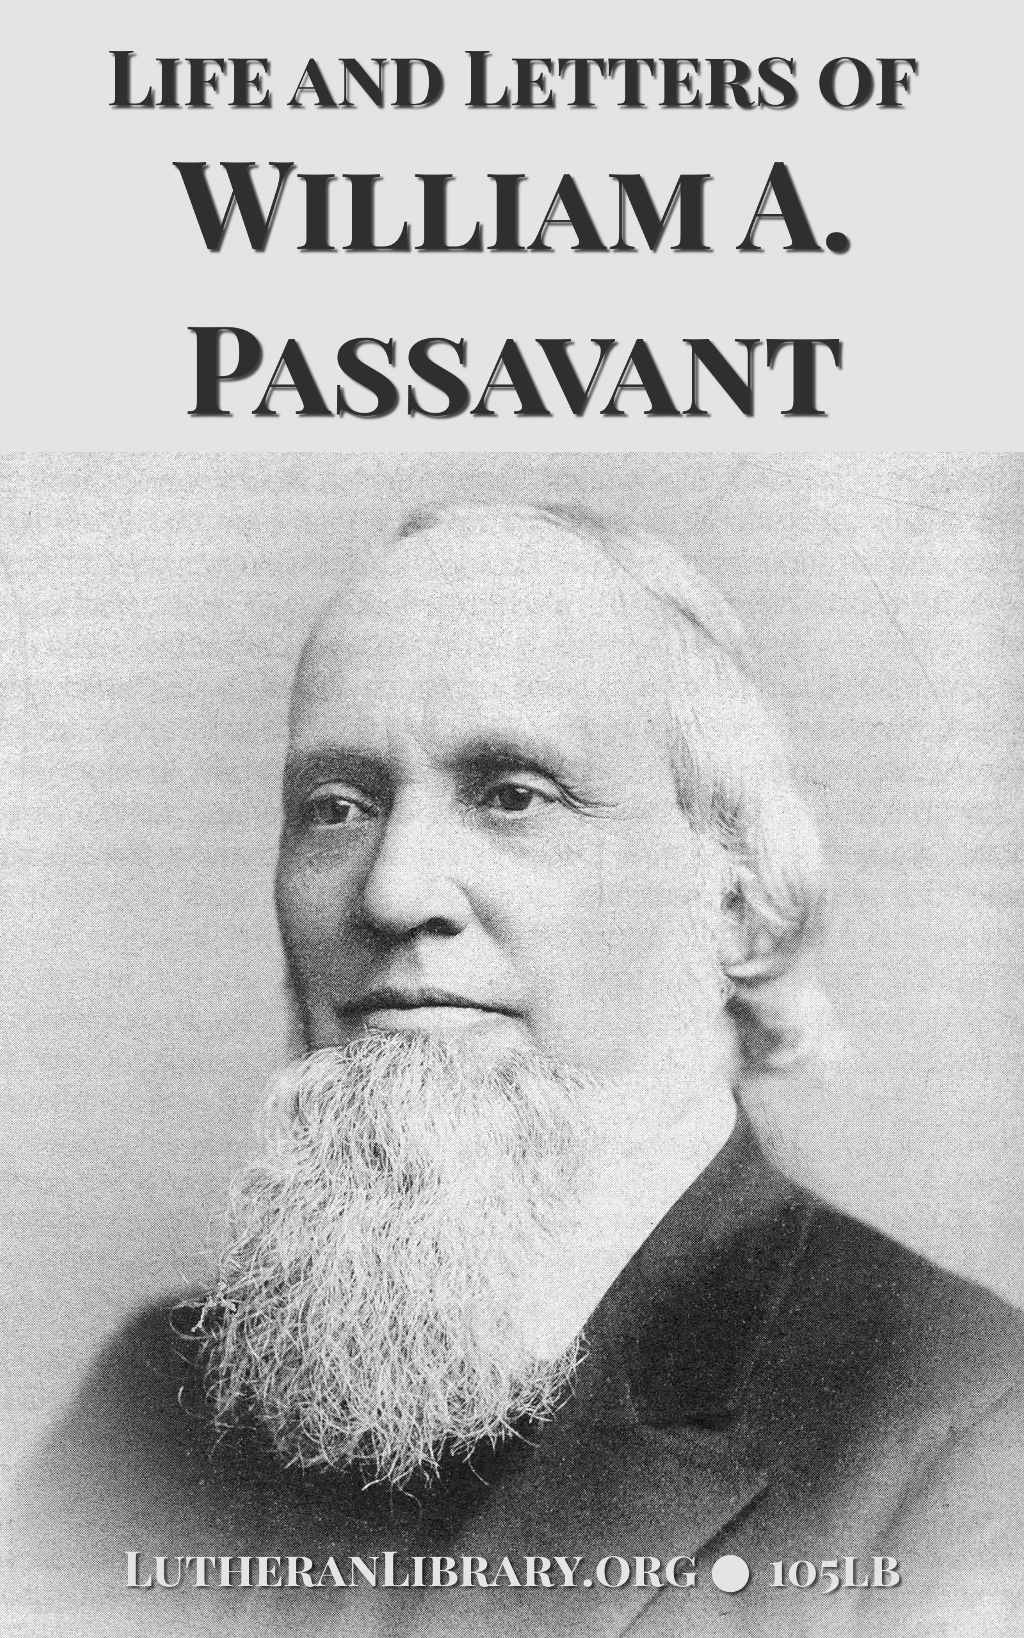 The Life and Letters of William A. Passavant by George H. Gerberding